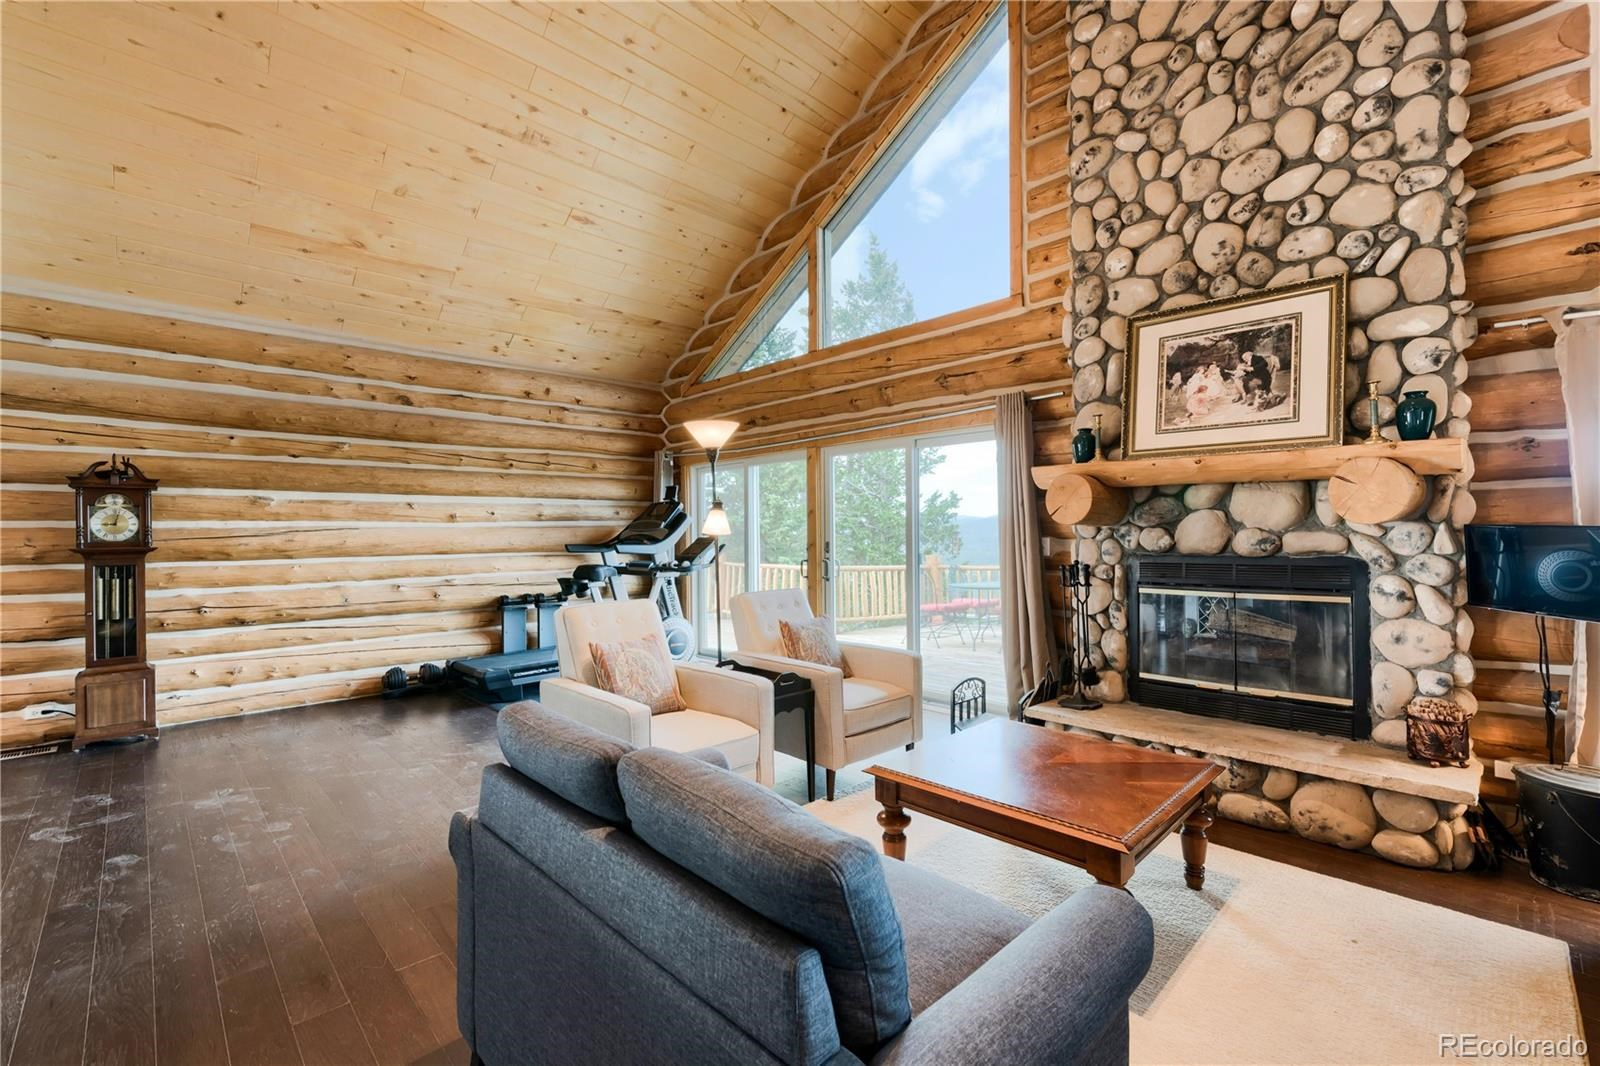 MLS# 3602520 - 11 - 107 Piegan Court, Red Feather Lakes, CO 80545